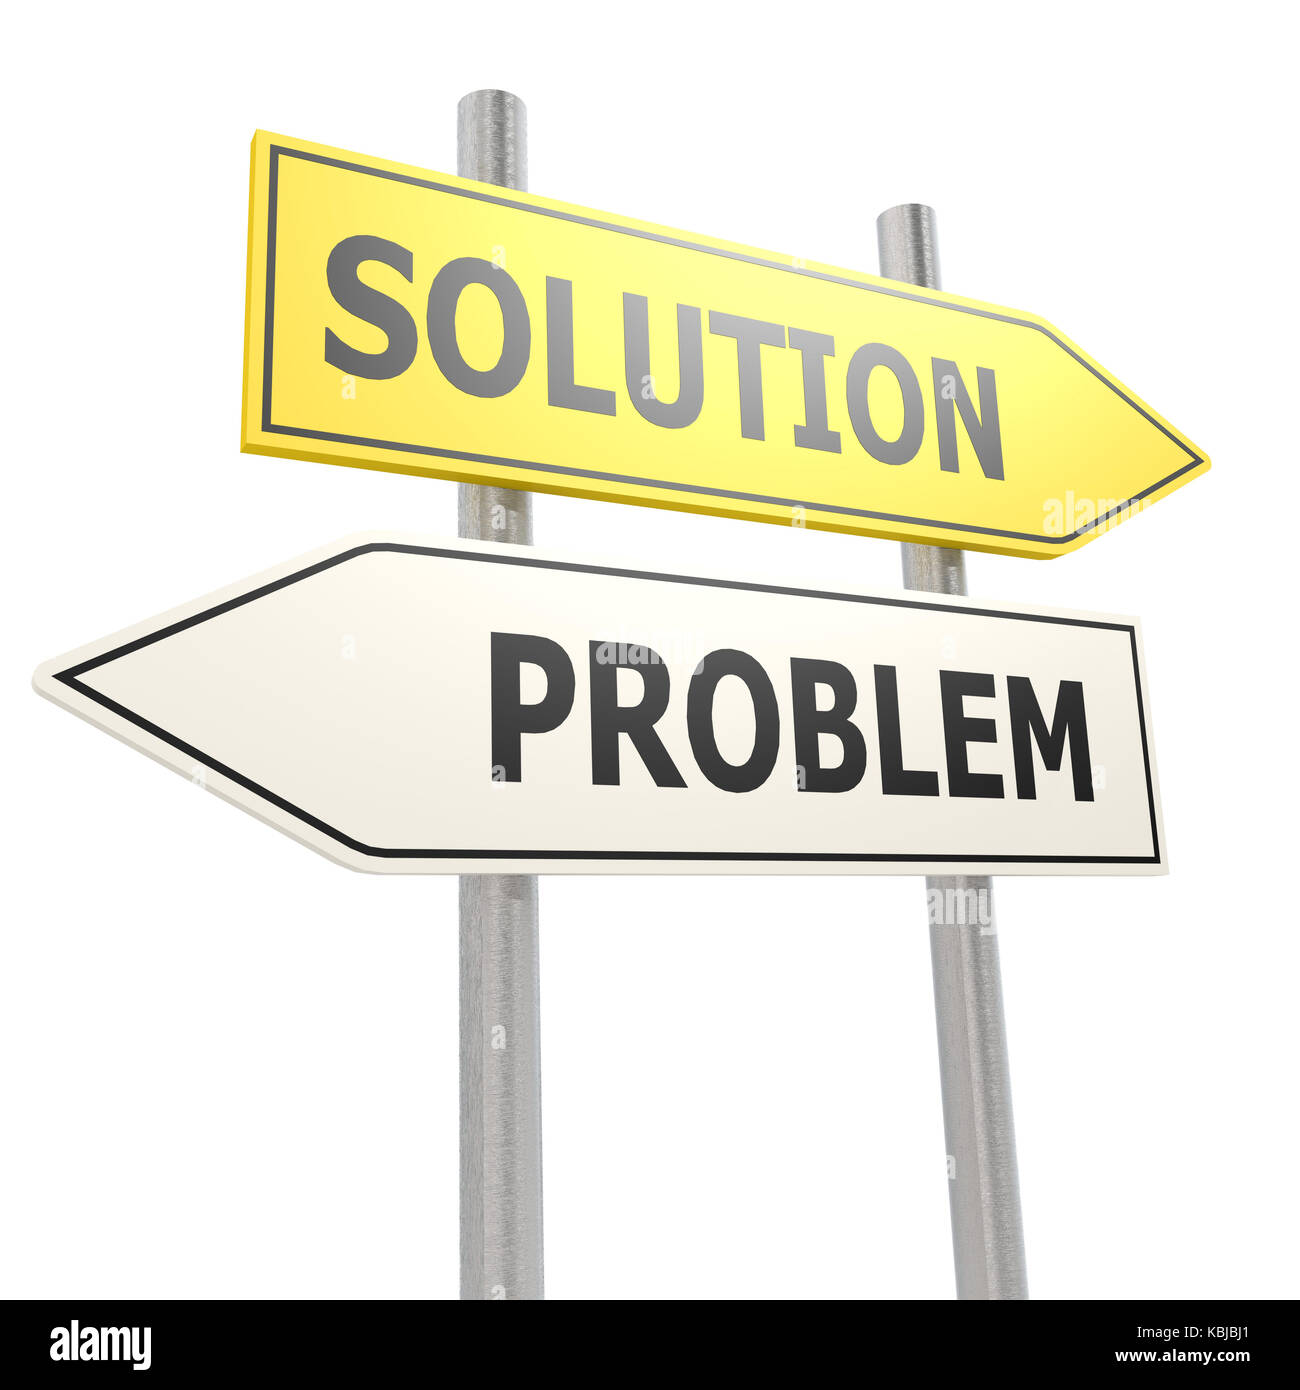 Problem solution road sign - Stock Image